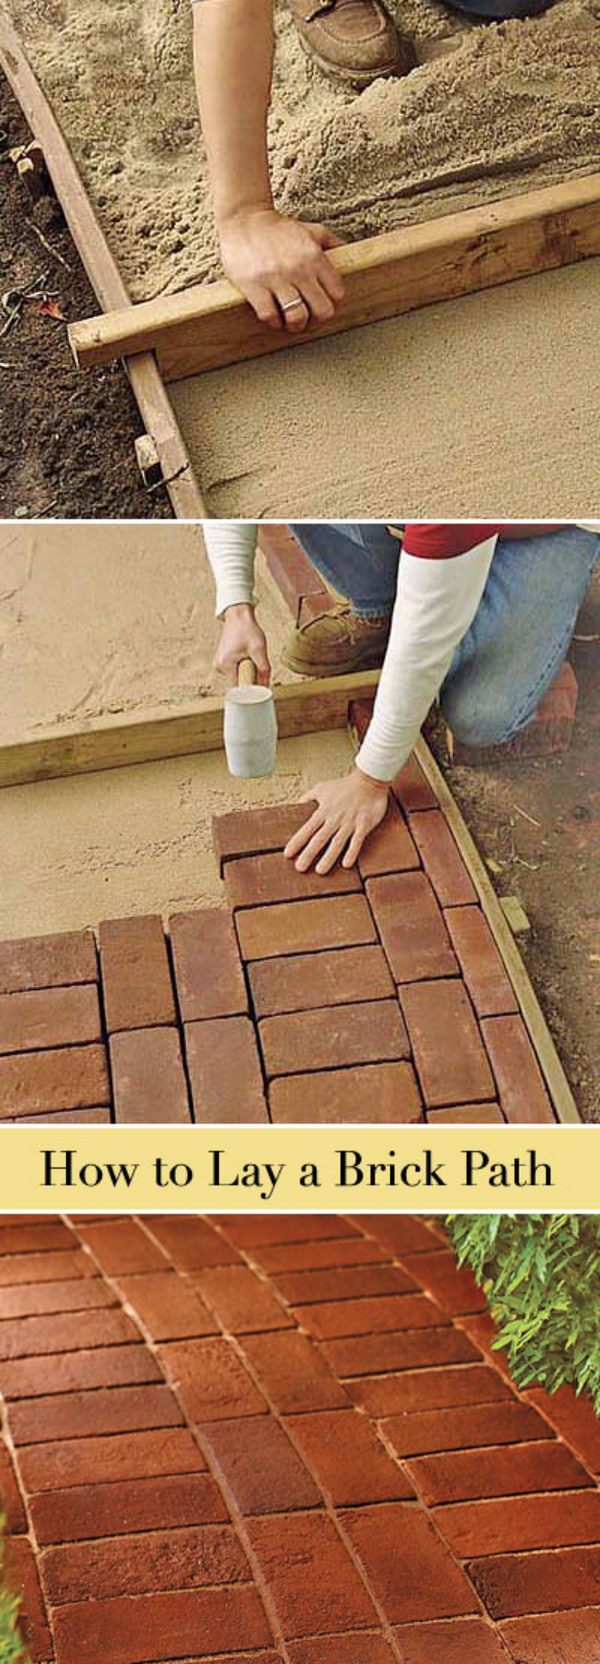 How to Lay a Brick Path.